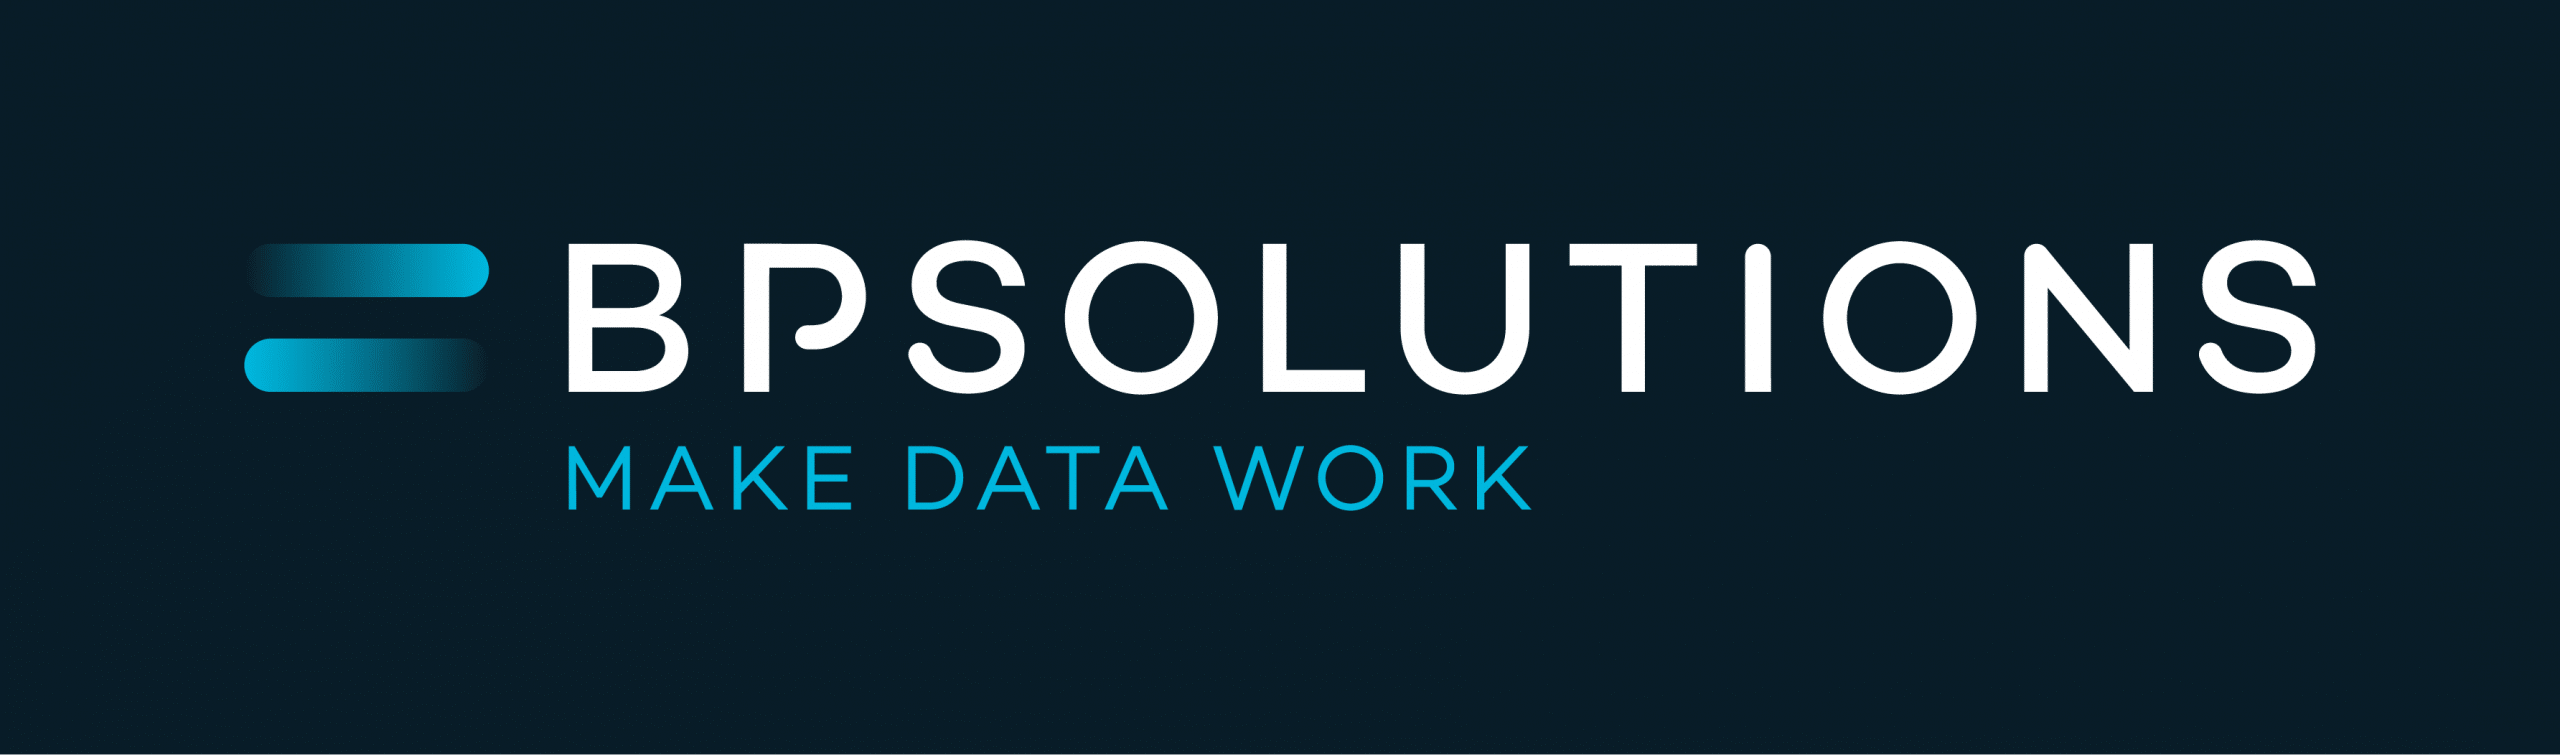 Press & Logos - BPSOLUTIONS. MAKE DATA WORK.